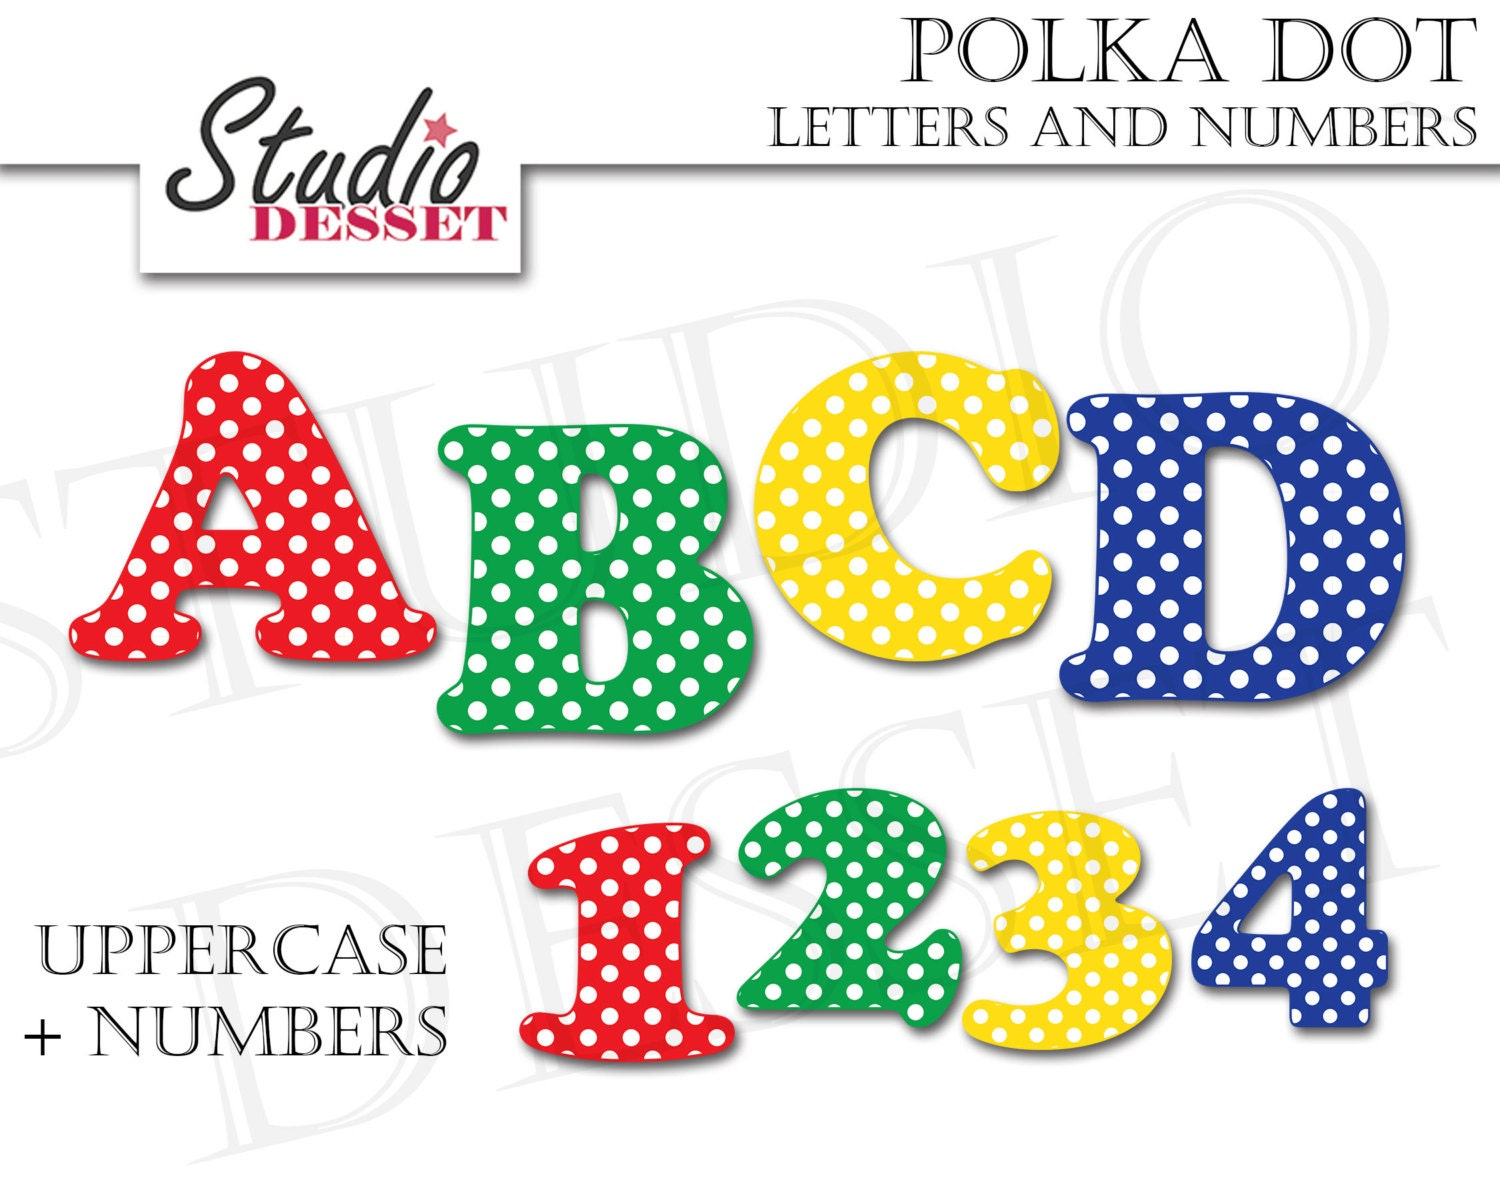 letter a with polka dots polka dot letters alphabet and numbers cliparts abc clipart 22783 | il fullxfull.612307518 h5lb